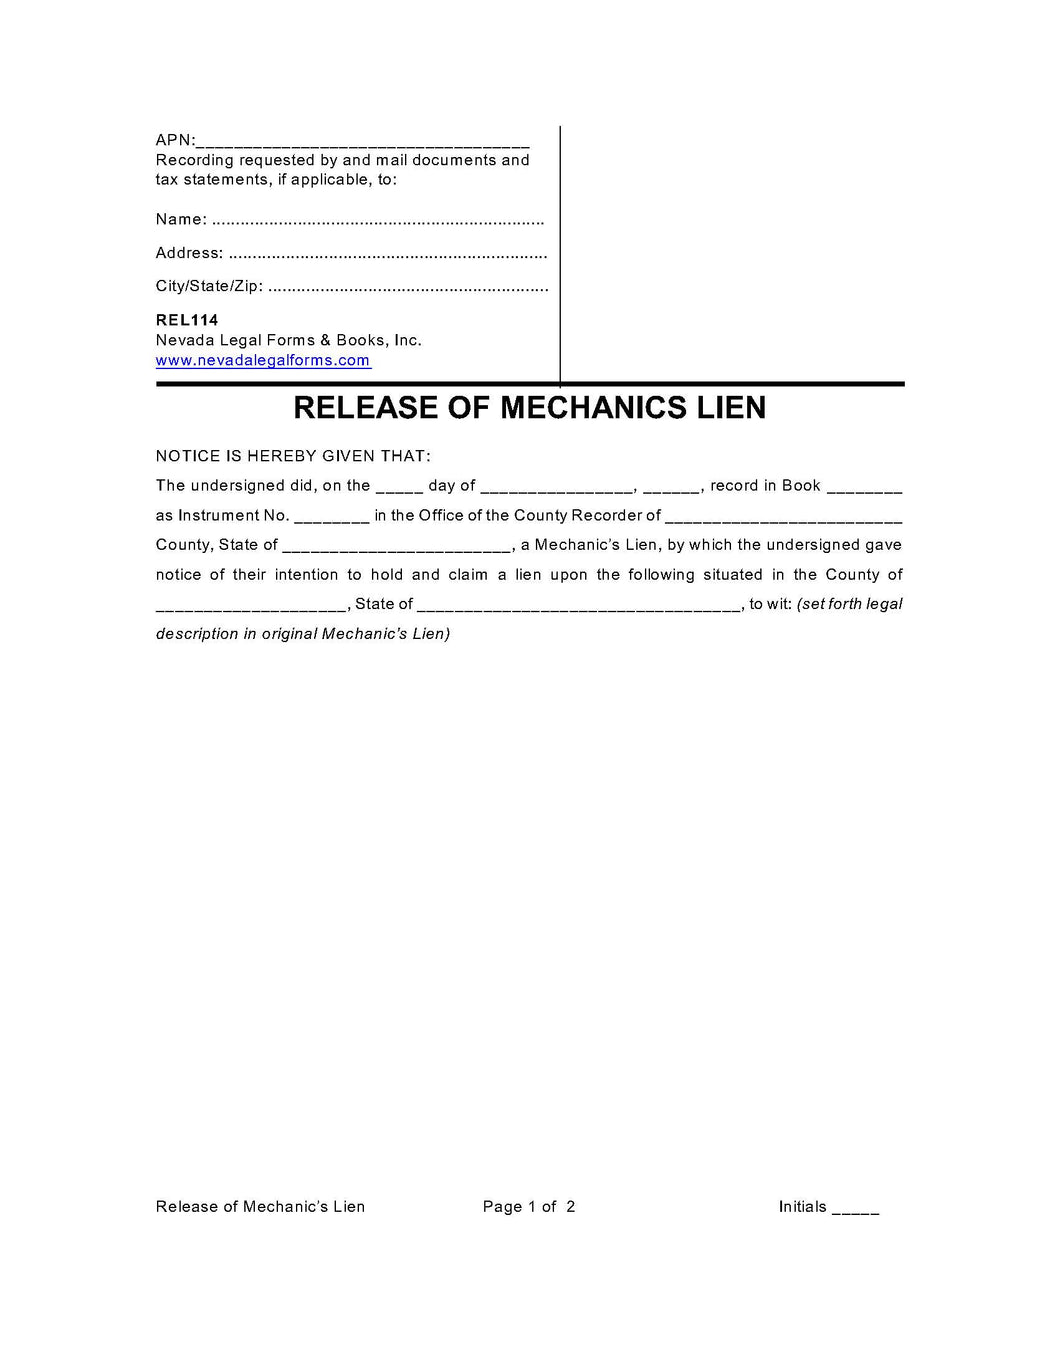 Release of Mechanic's Lien